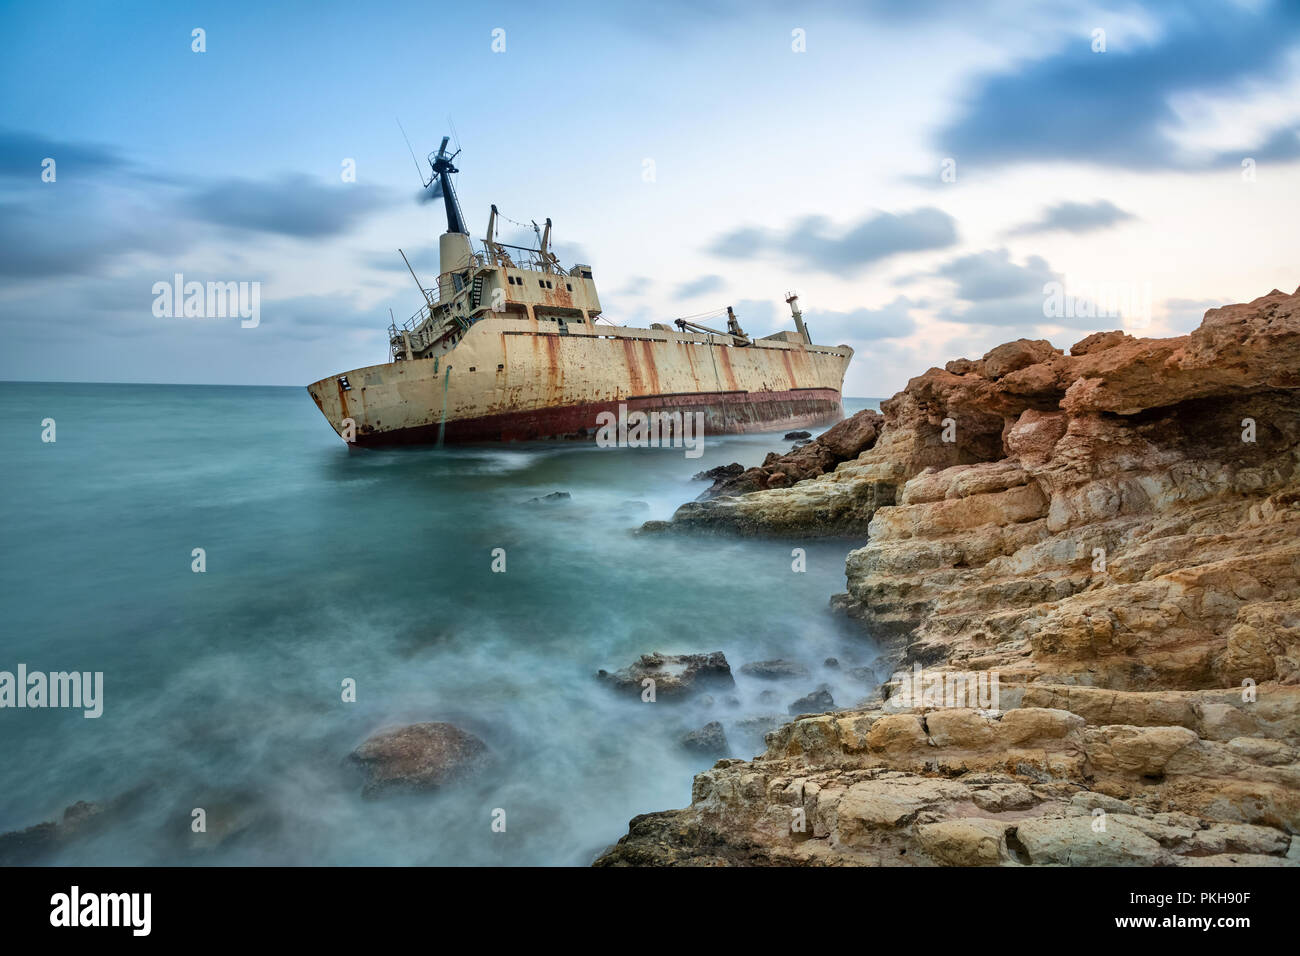 Abandoned ship that was shipwrecked off near the coast of Cyprus - Stock Image